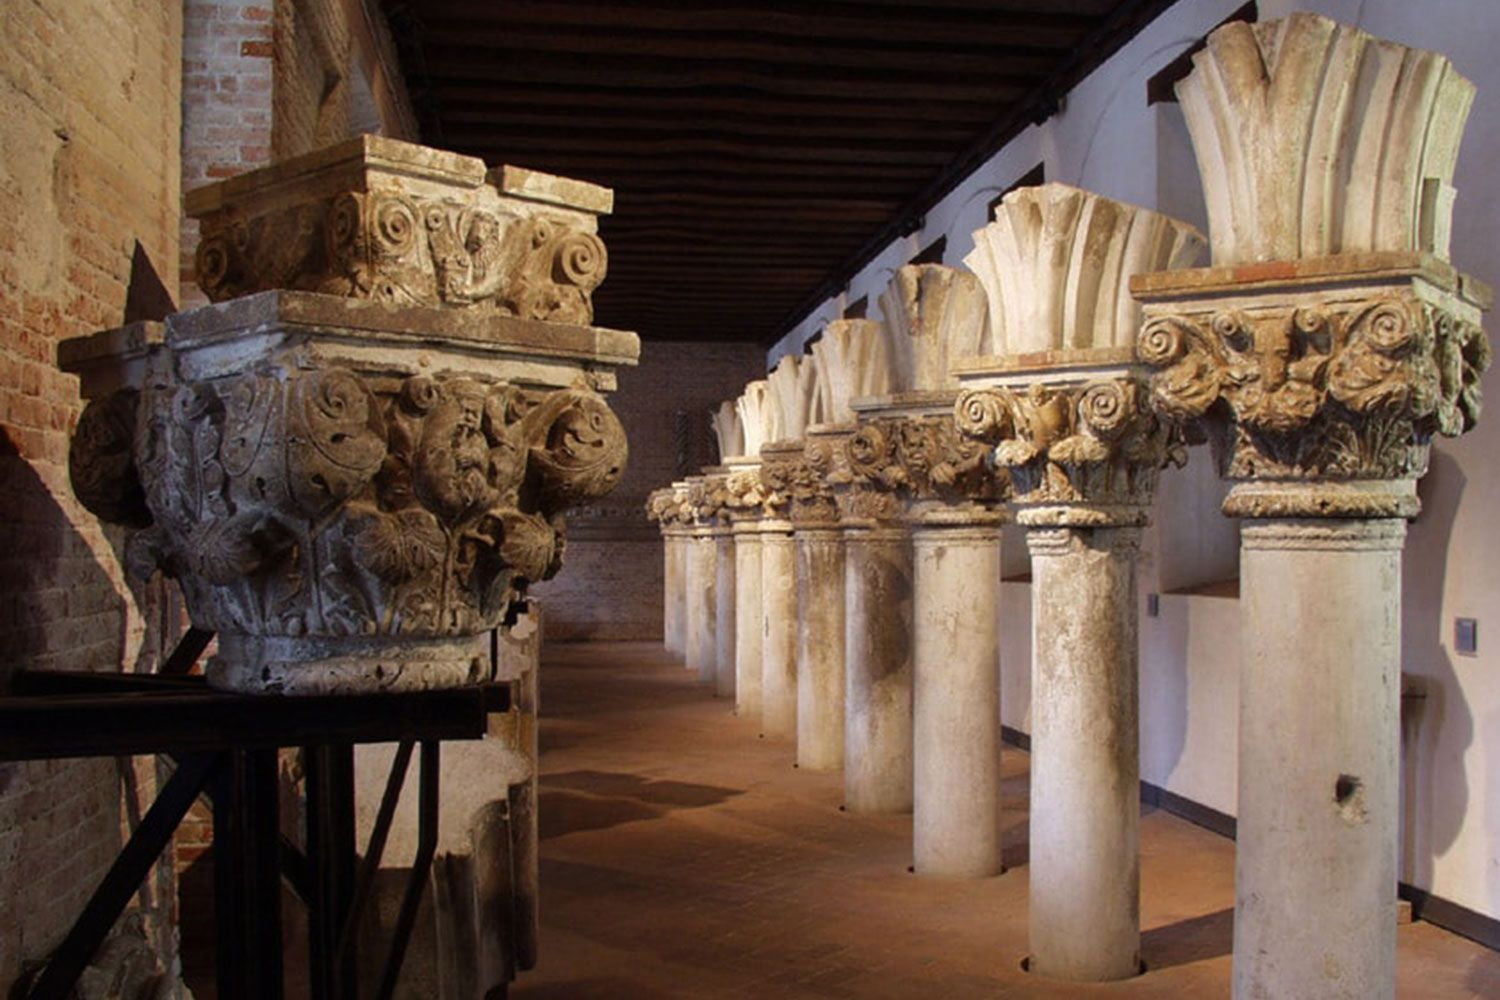 Even discarded stone and columns in Venice are important enough to grace a museum.